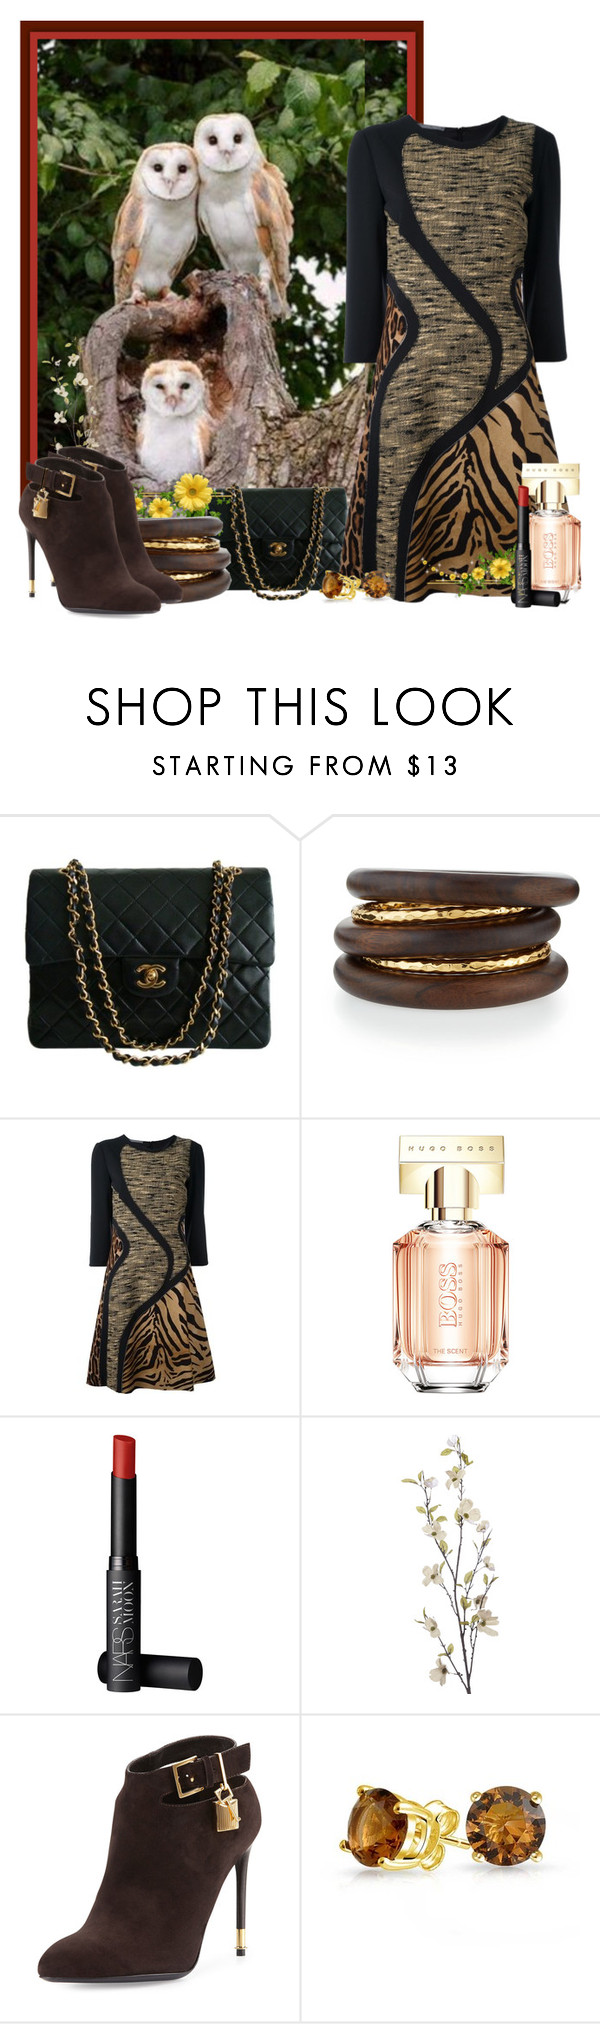 """""""Owls!"""" by brenda-joyce ❤ liked on Polyvore featuring Chanel, NEST Jewelry, Alberta Ferretti, HUGO, NARS Cosmetics, Pier 1 Imports, Tom Ford and Bling Jewelry"""